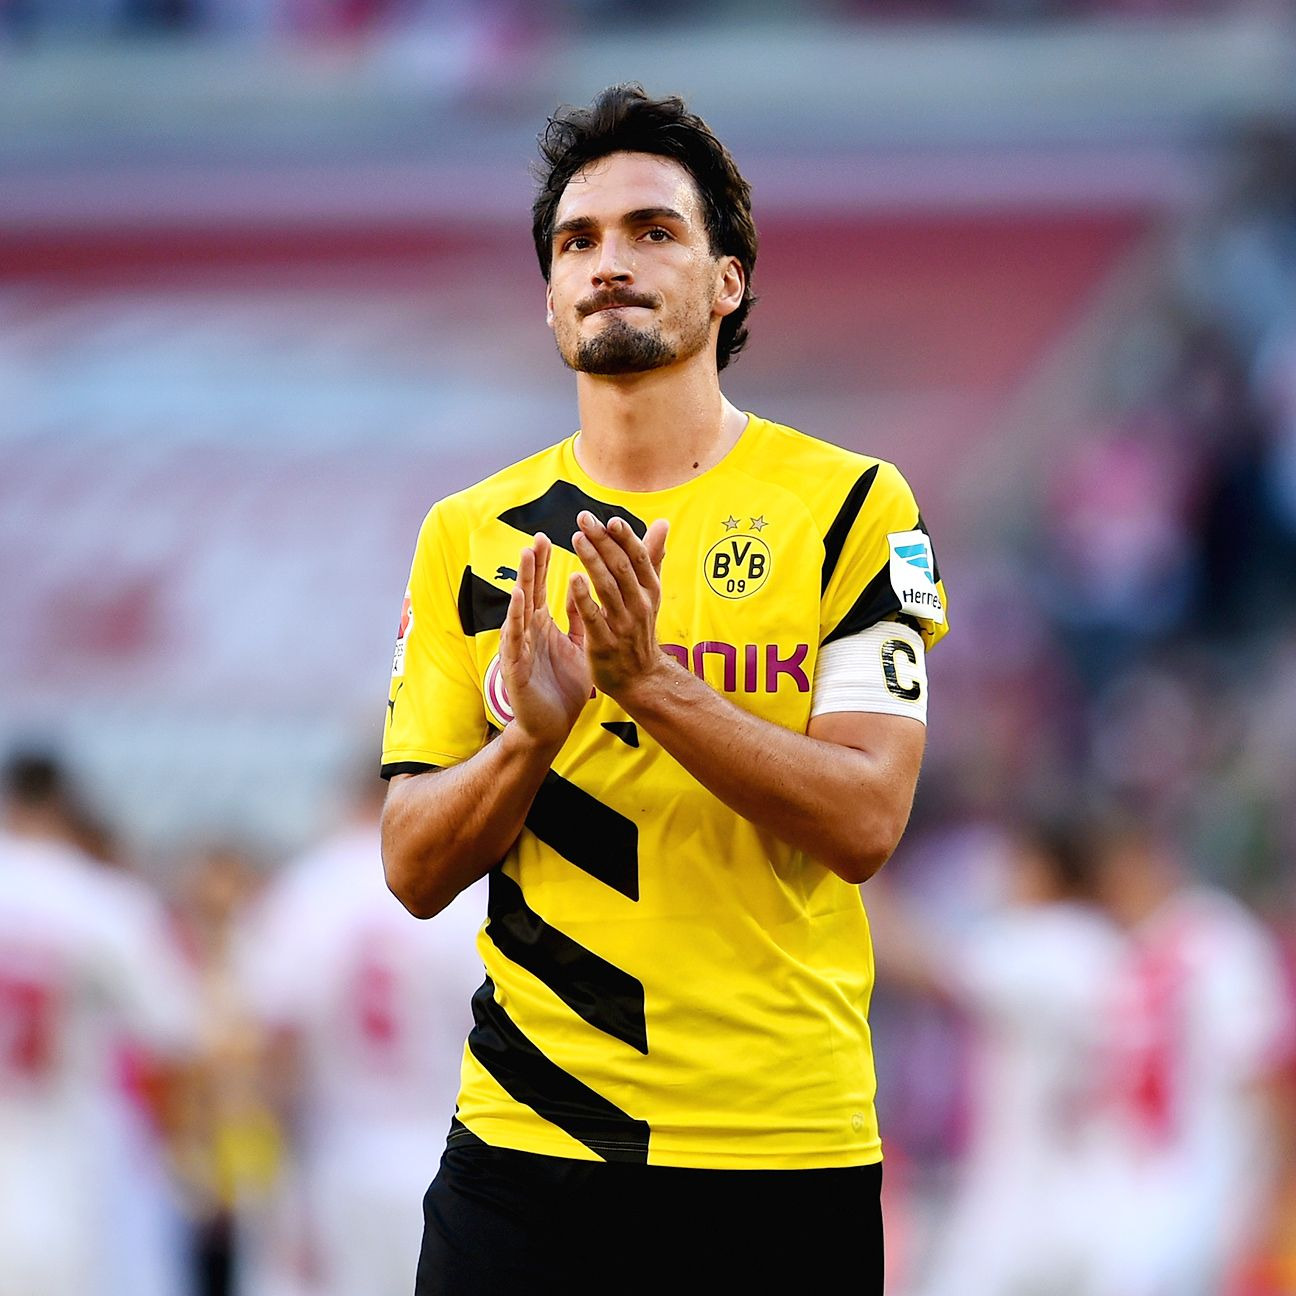 The availability of defender Mats Hummels is still in doubt for Borussia Dortmund.